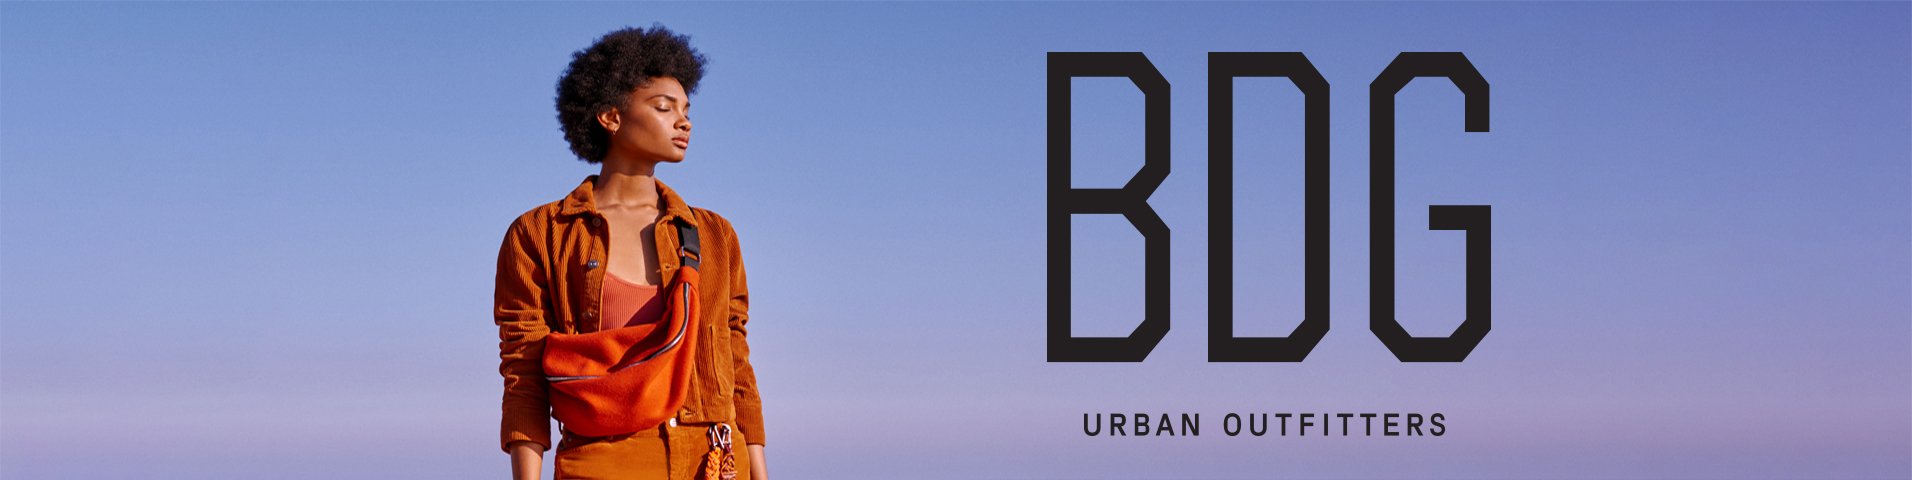 304ec56ede6aa4 BDG Urban Outfitters online shop